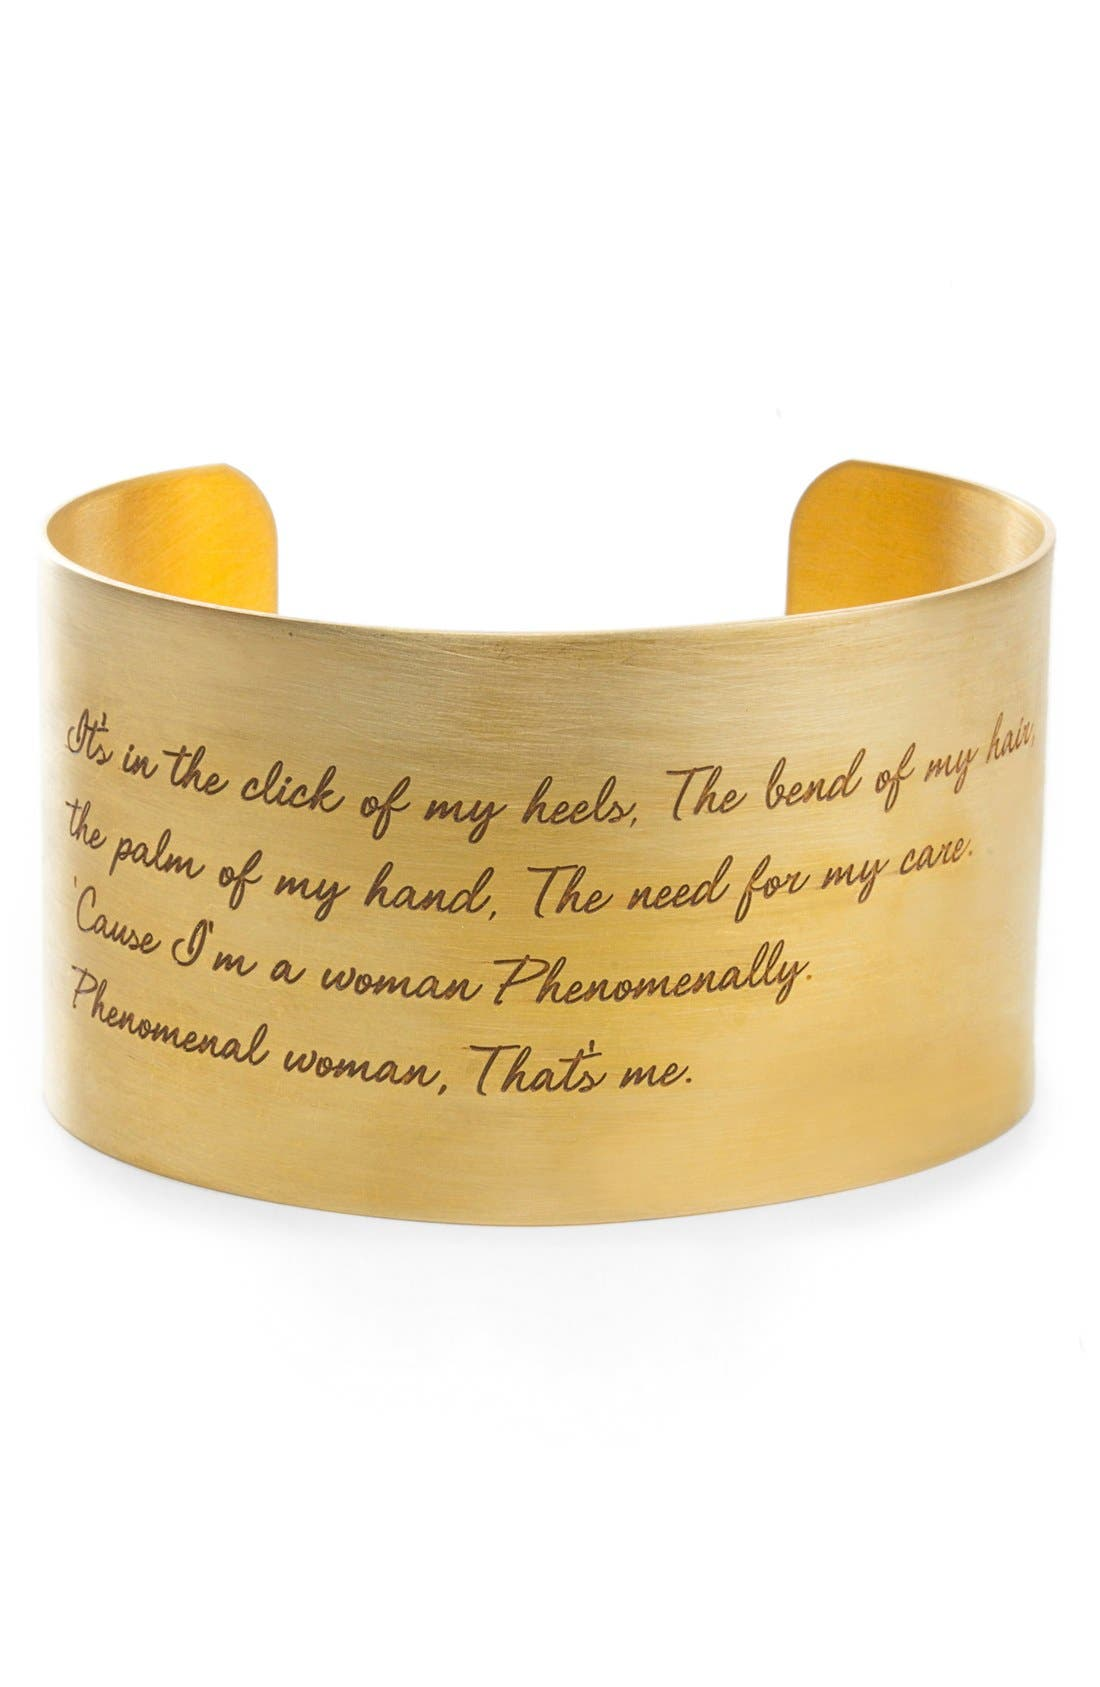 Dogeared 'Legacy Collection - Phenomenal Women' Wrist Cuff